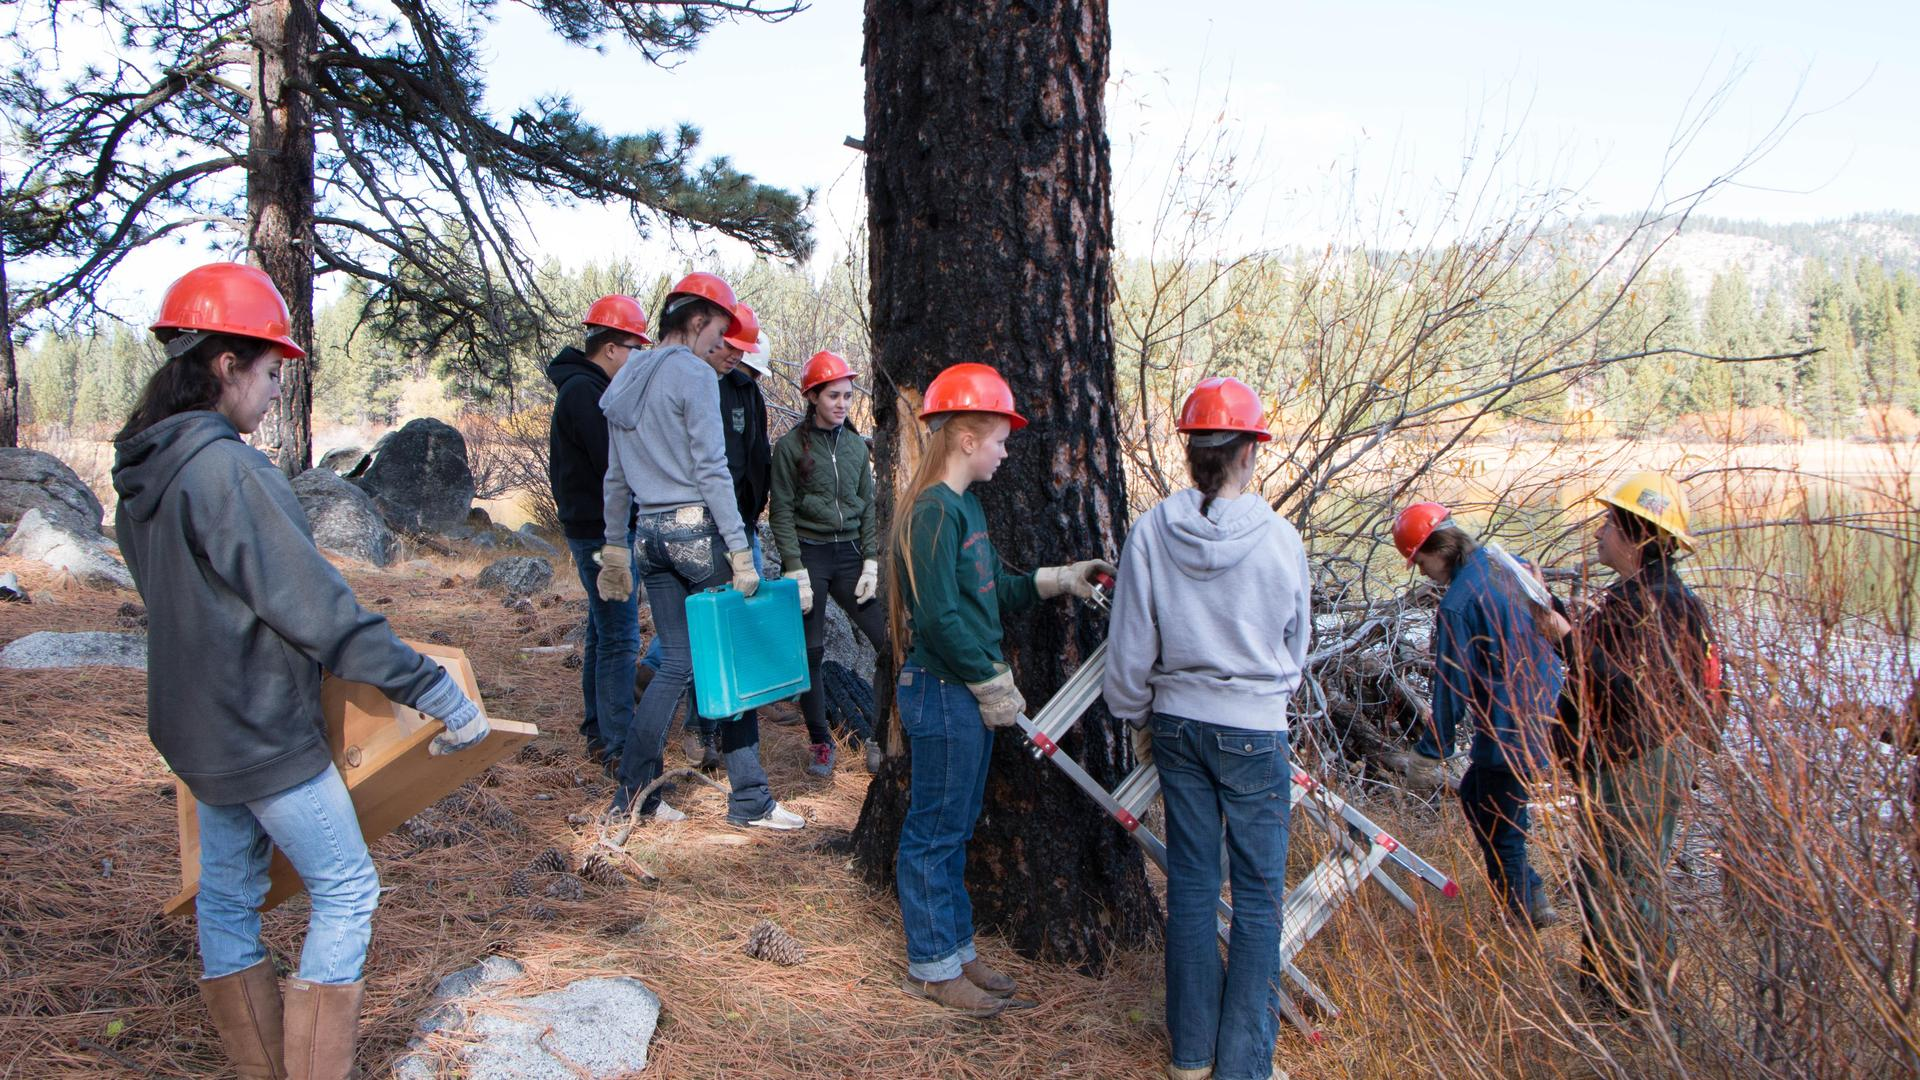 Fire Restoration Project with Plumas National Forest